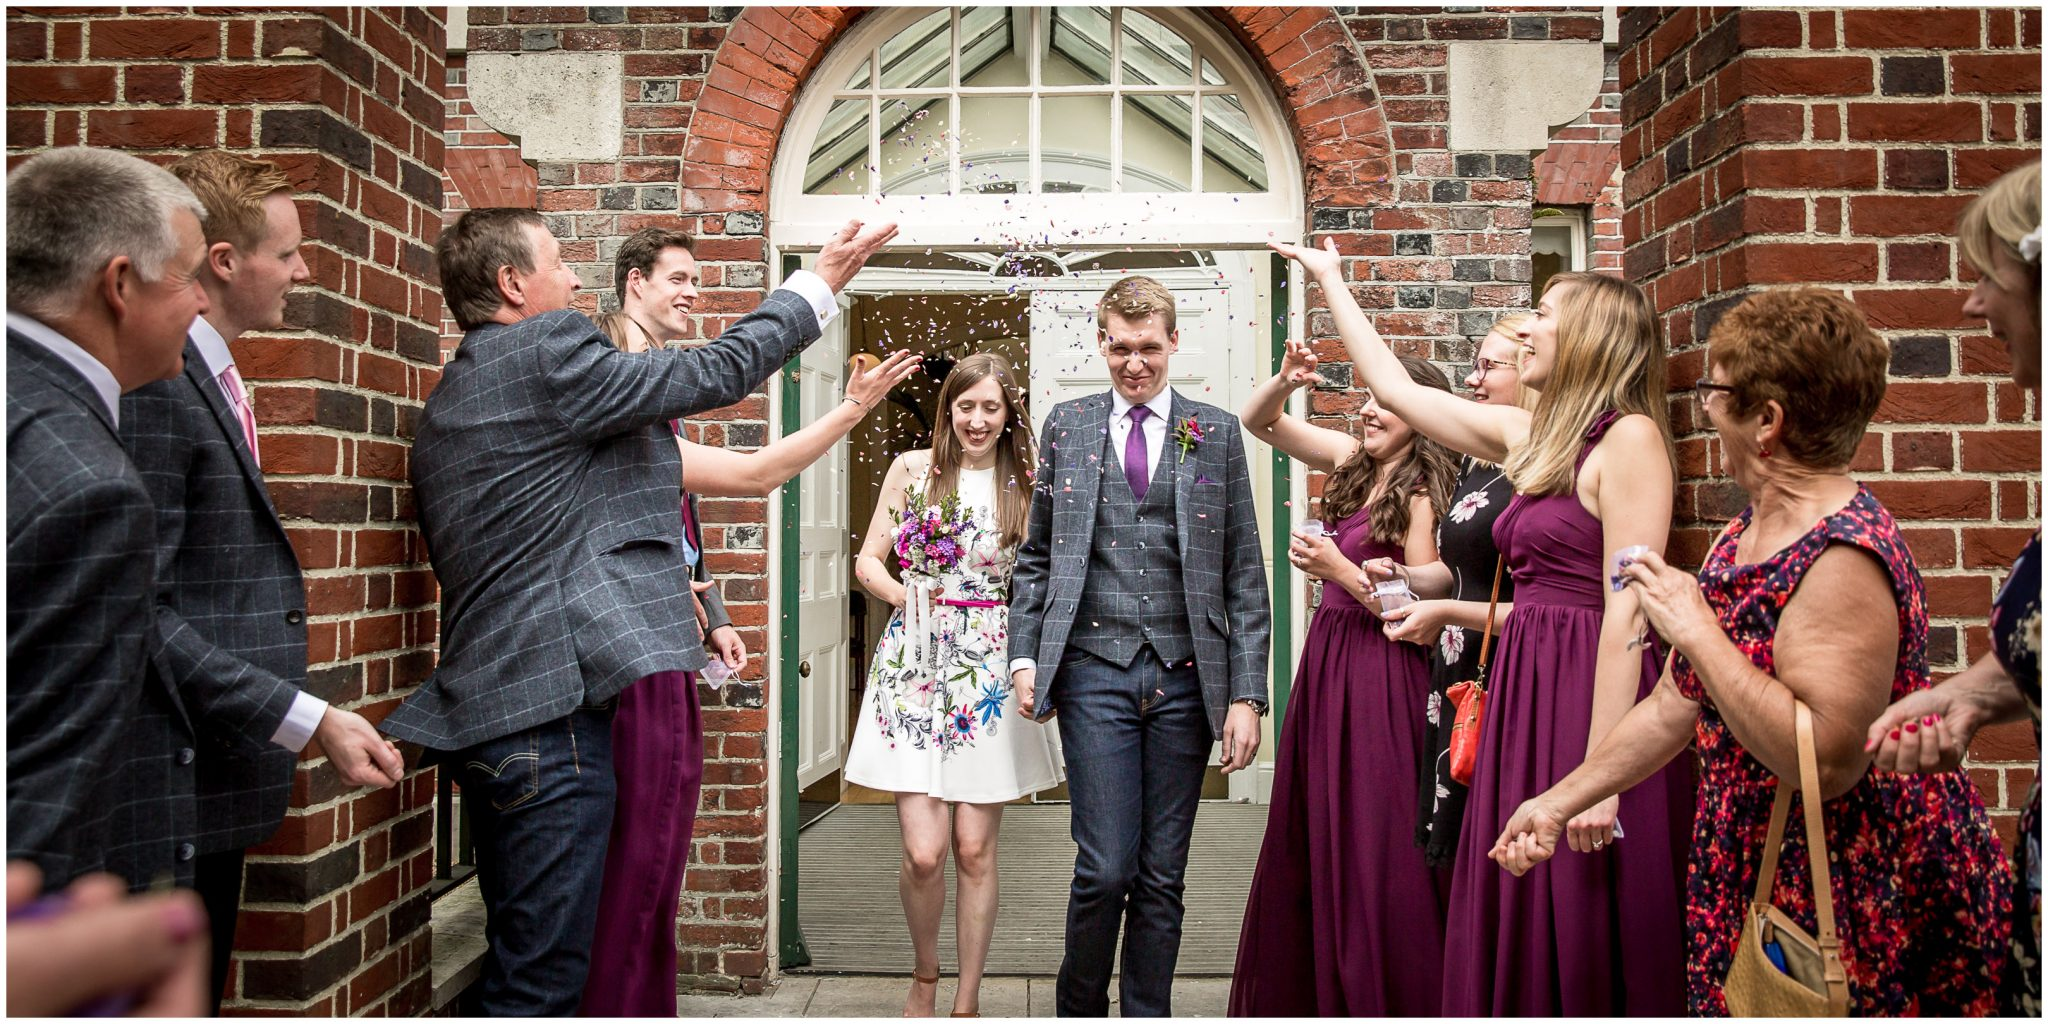 Portsmouth Registry Office wedding confetti as bride and groom exit building